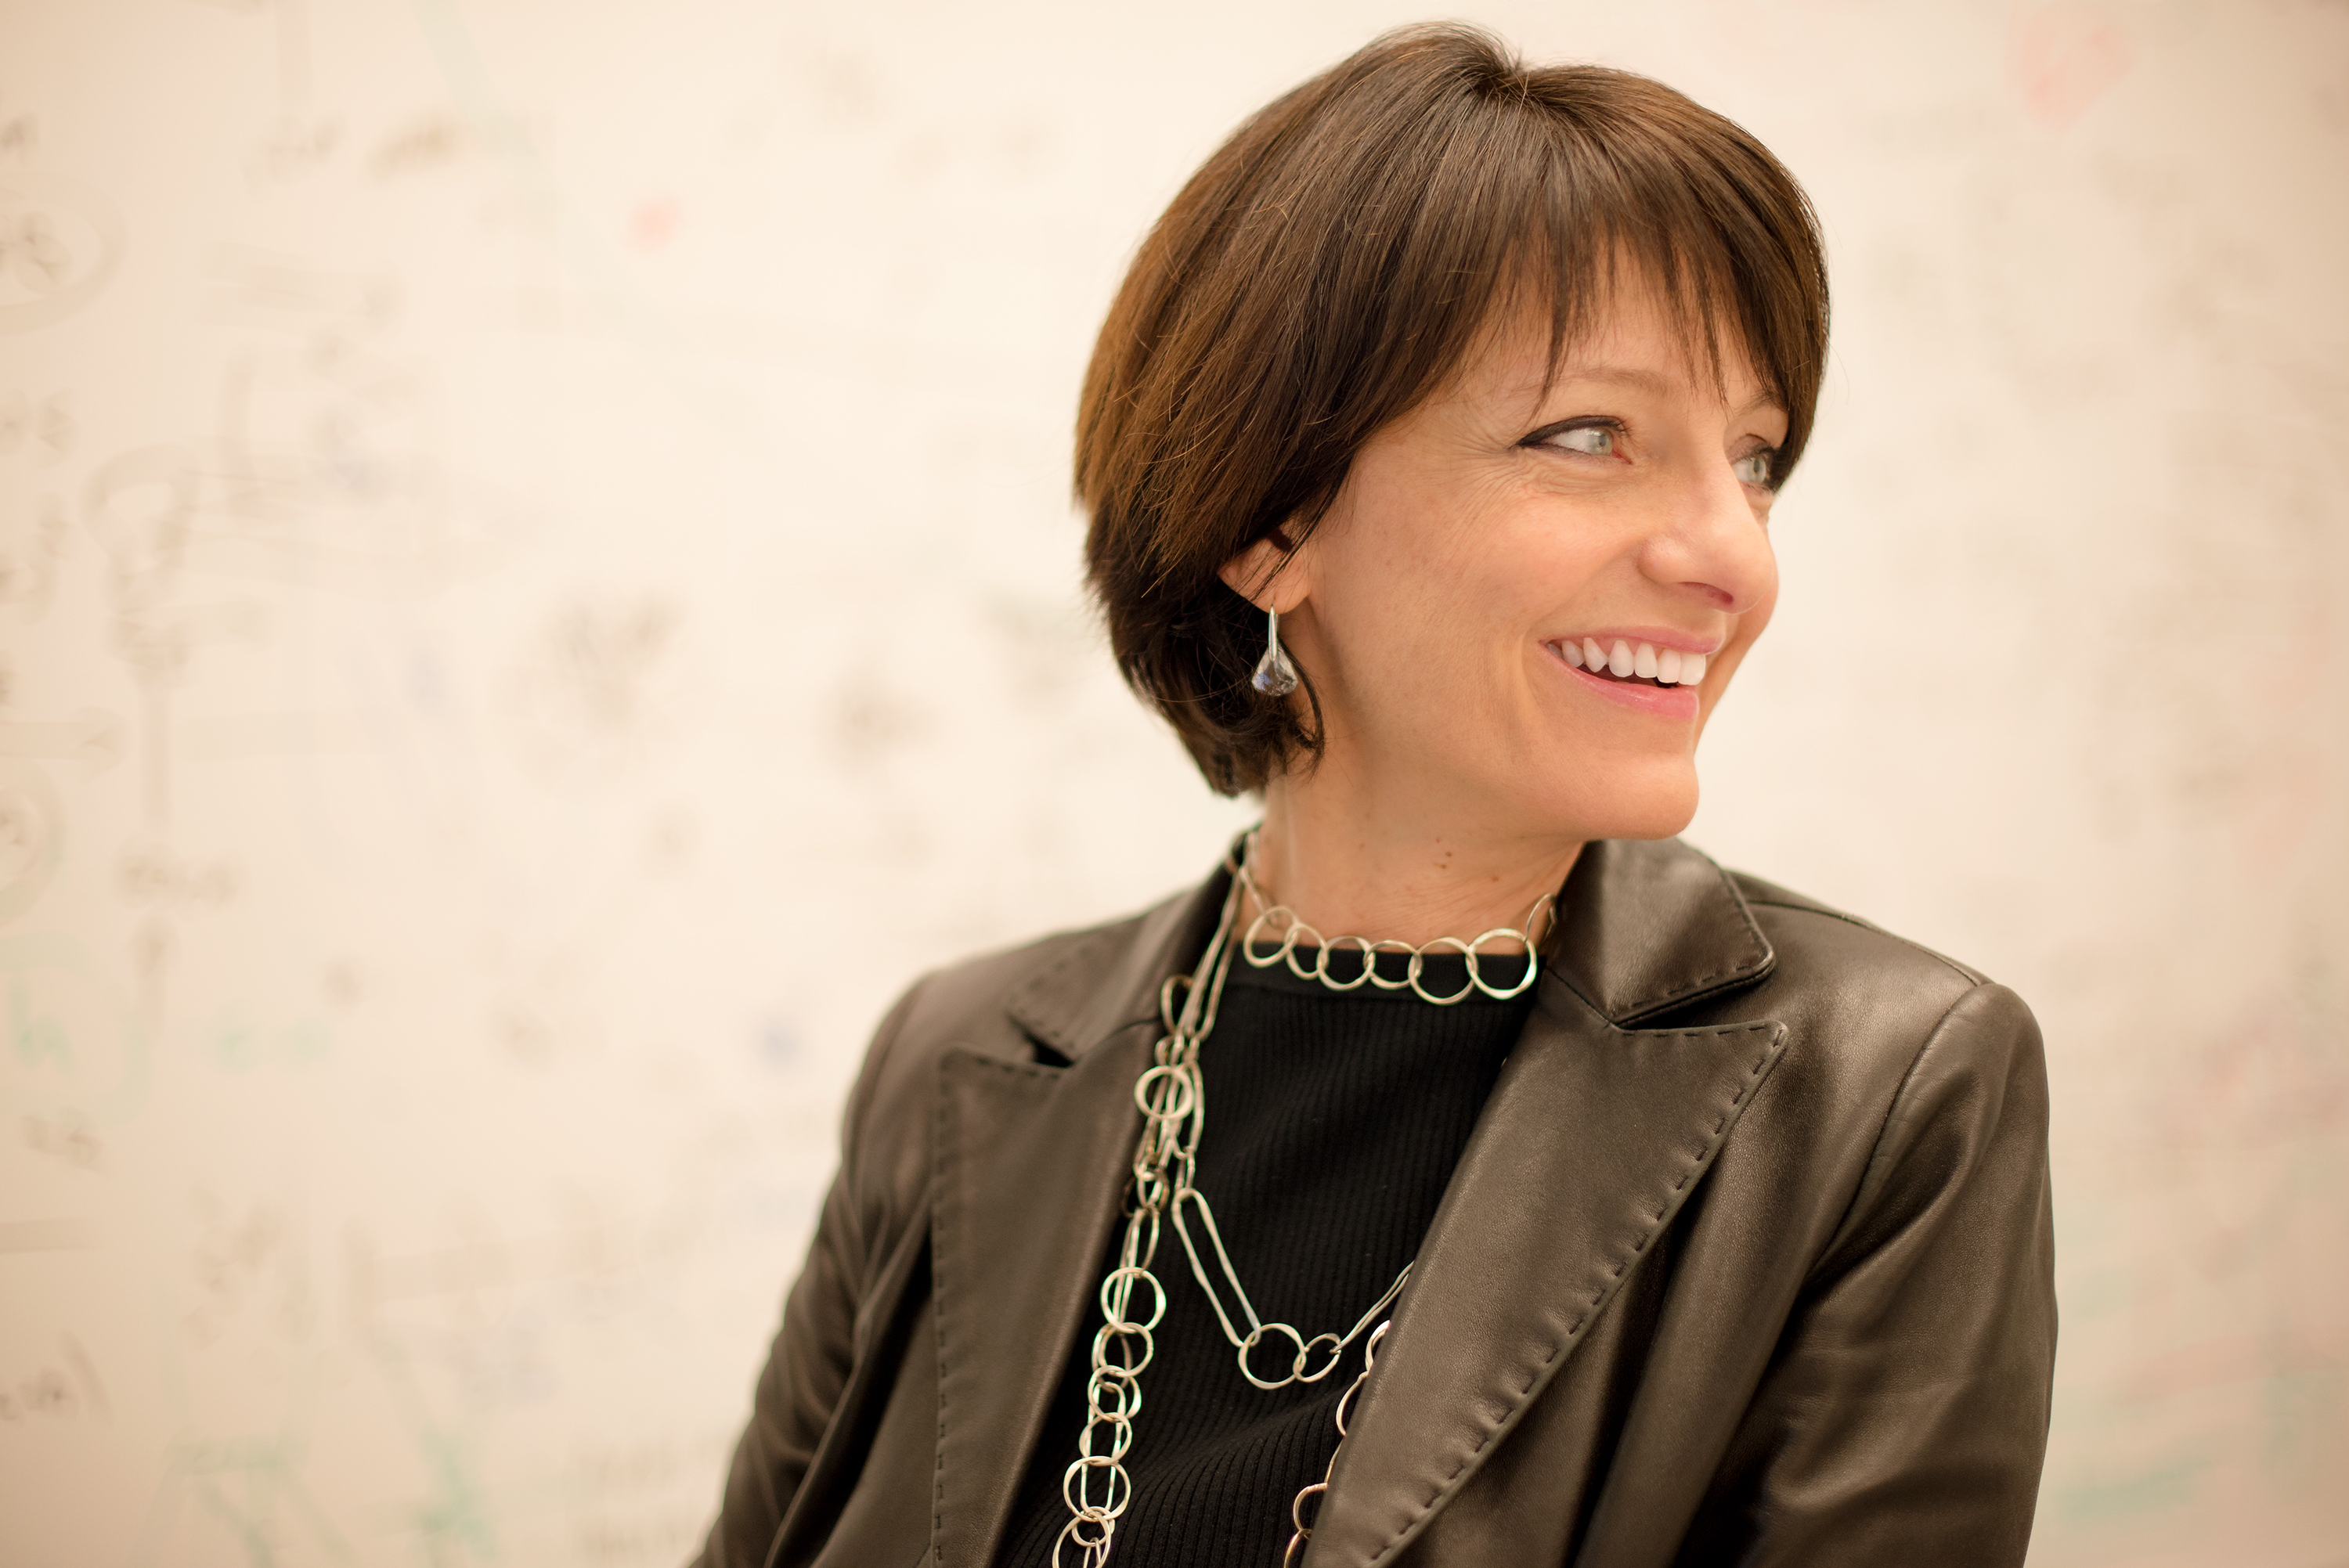 Regina Dugan, formerly of Google, will lead Facebook's Building 8 Group.